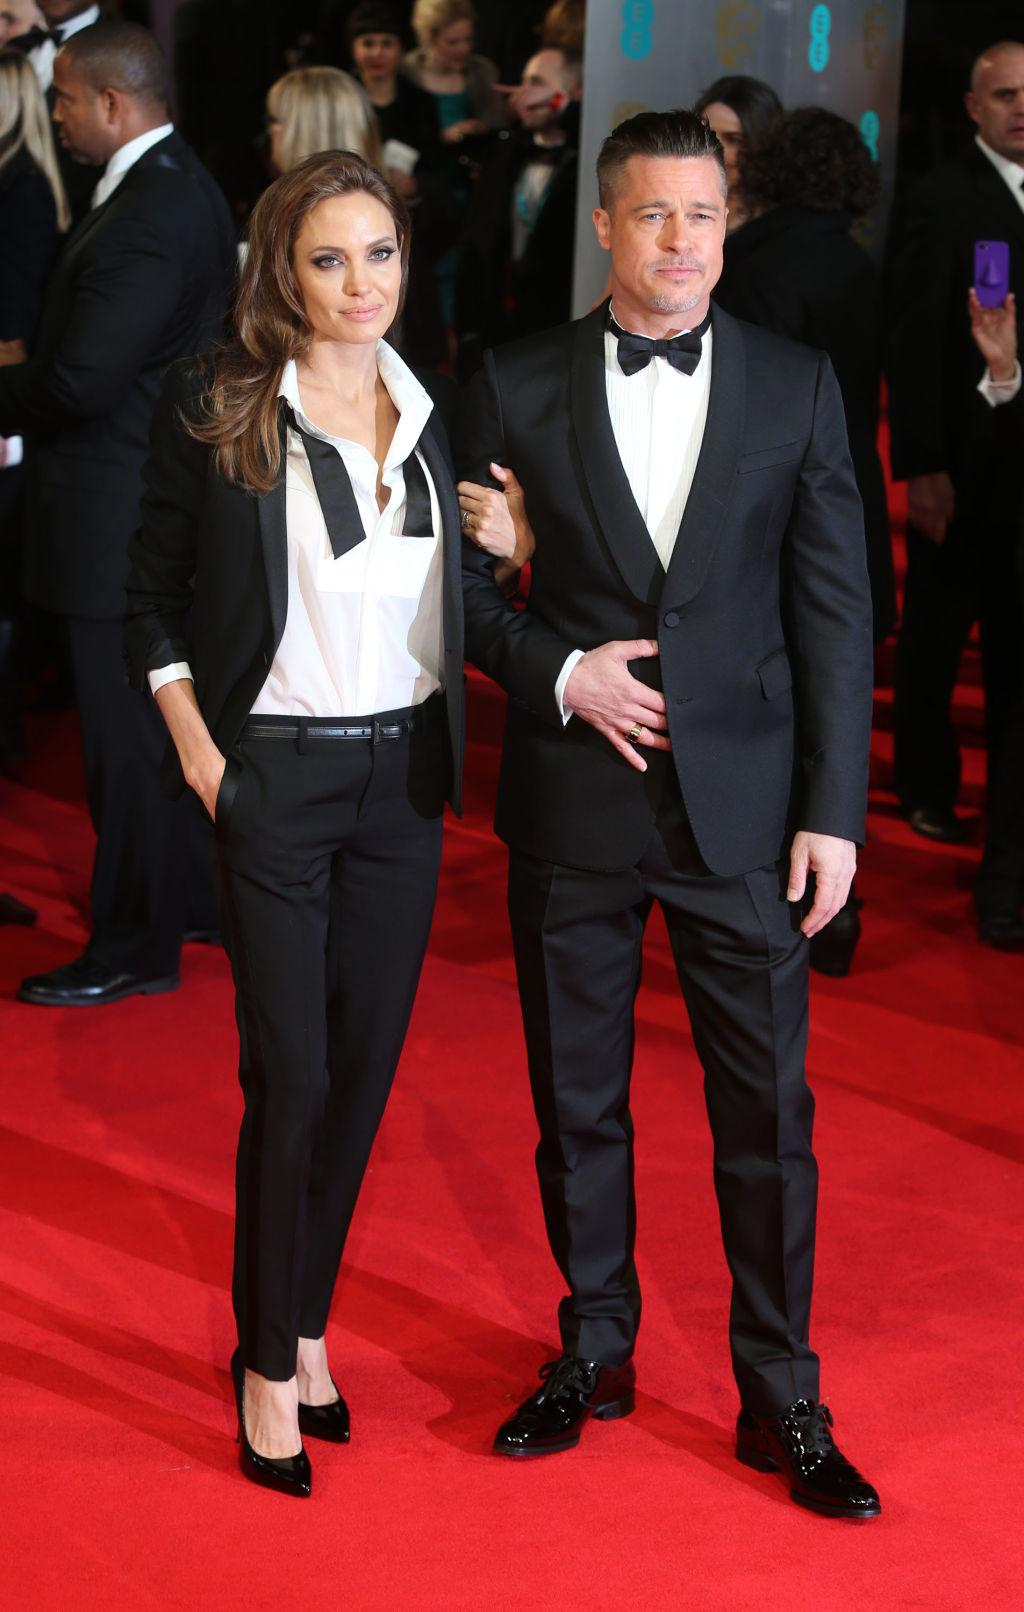 Gero Golden Boys photos: jolie, pitt wed privately at french chateau | latest